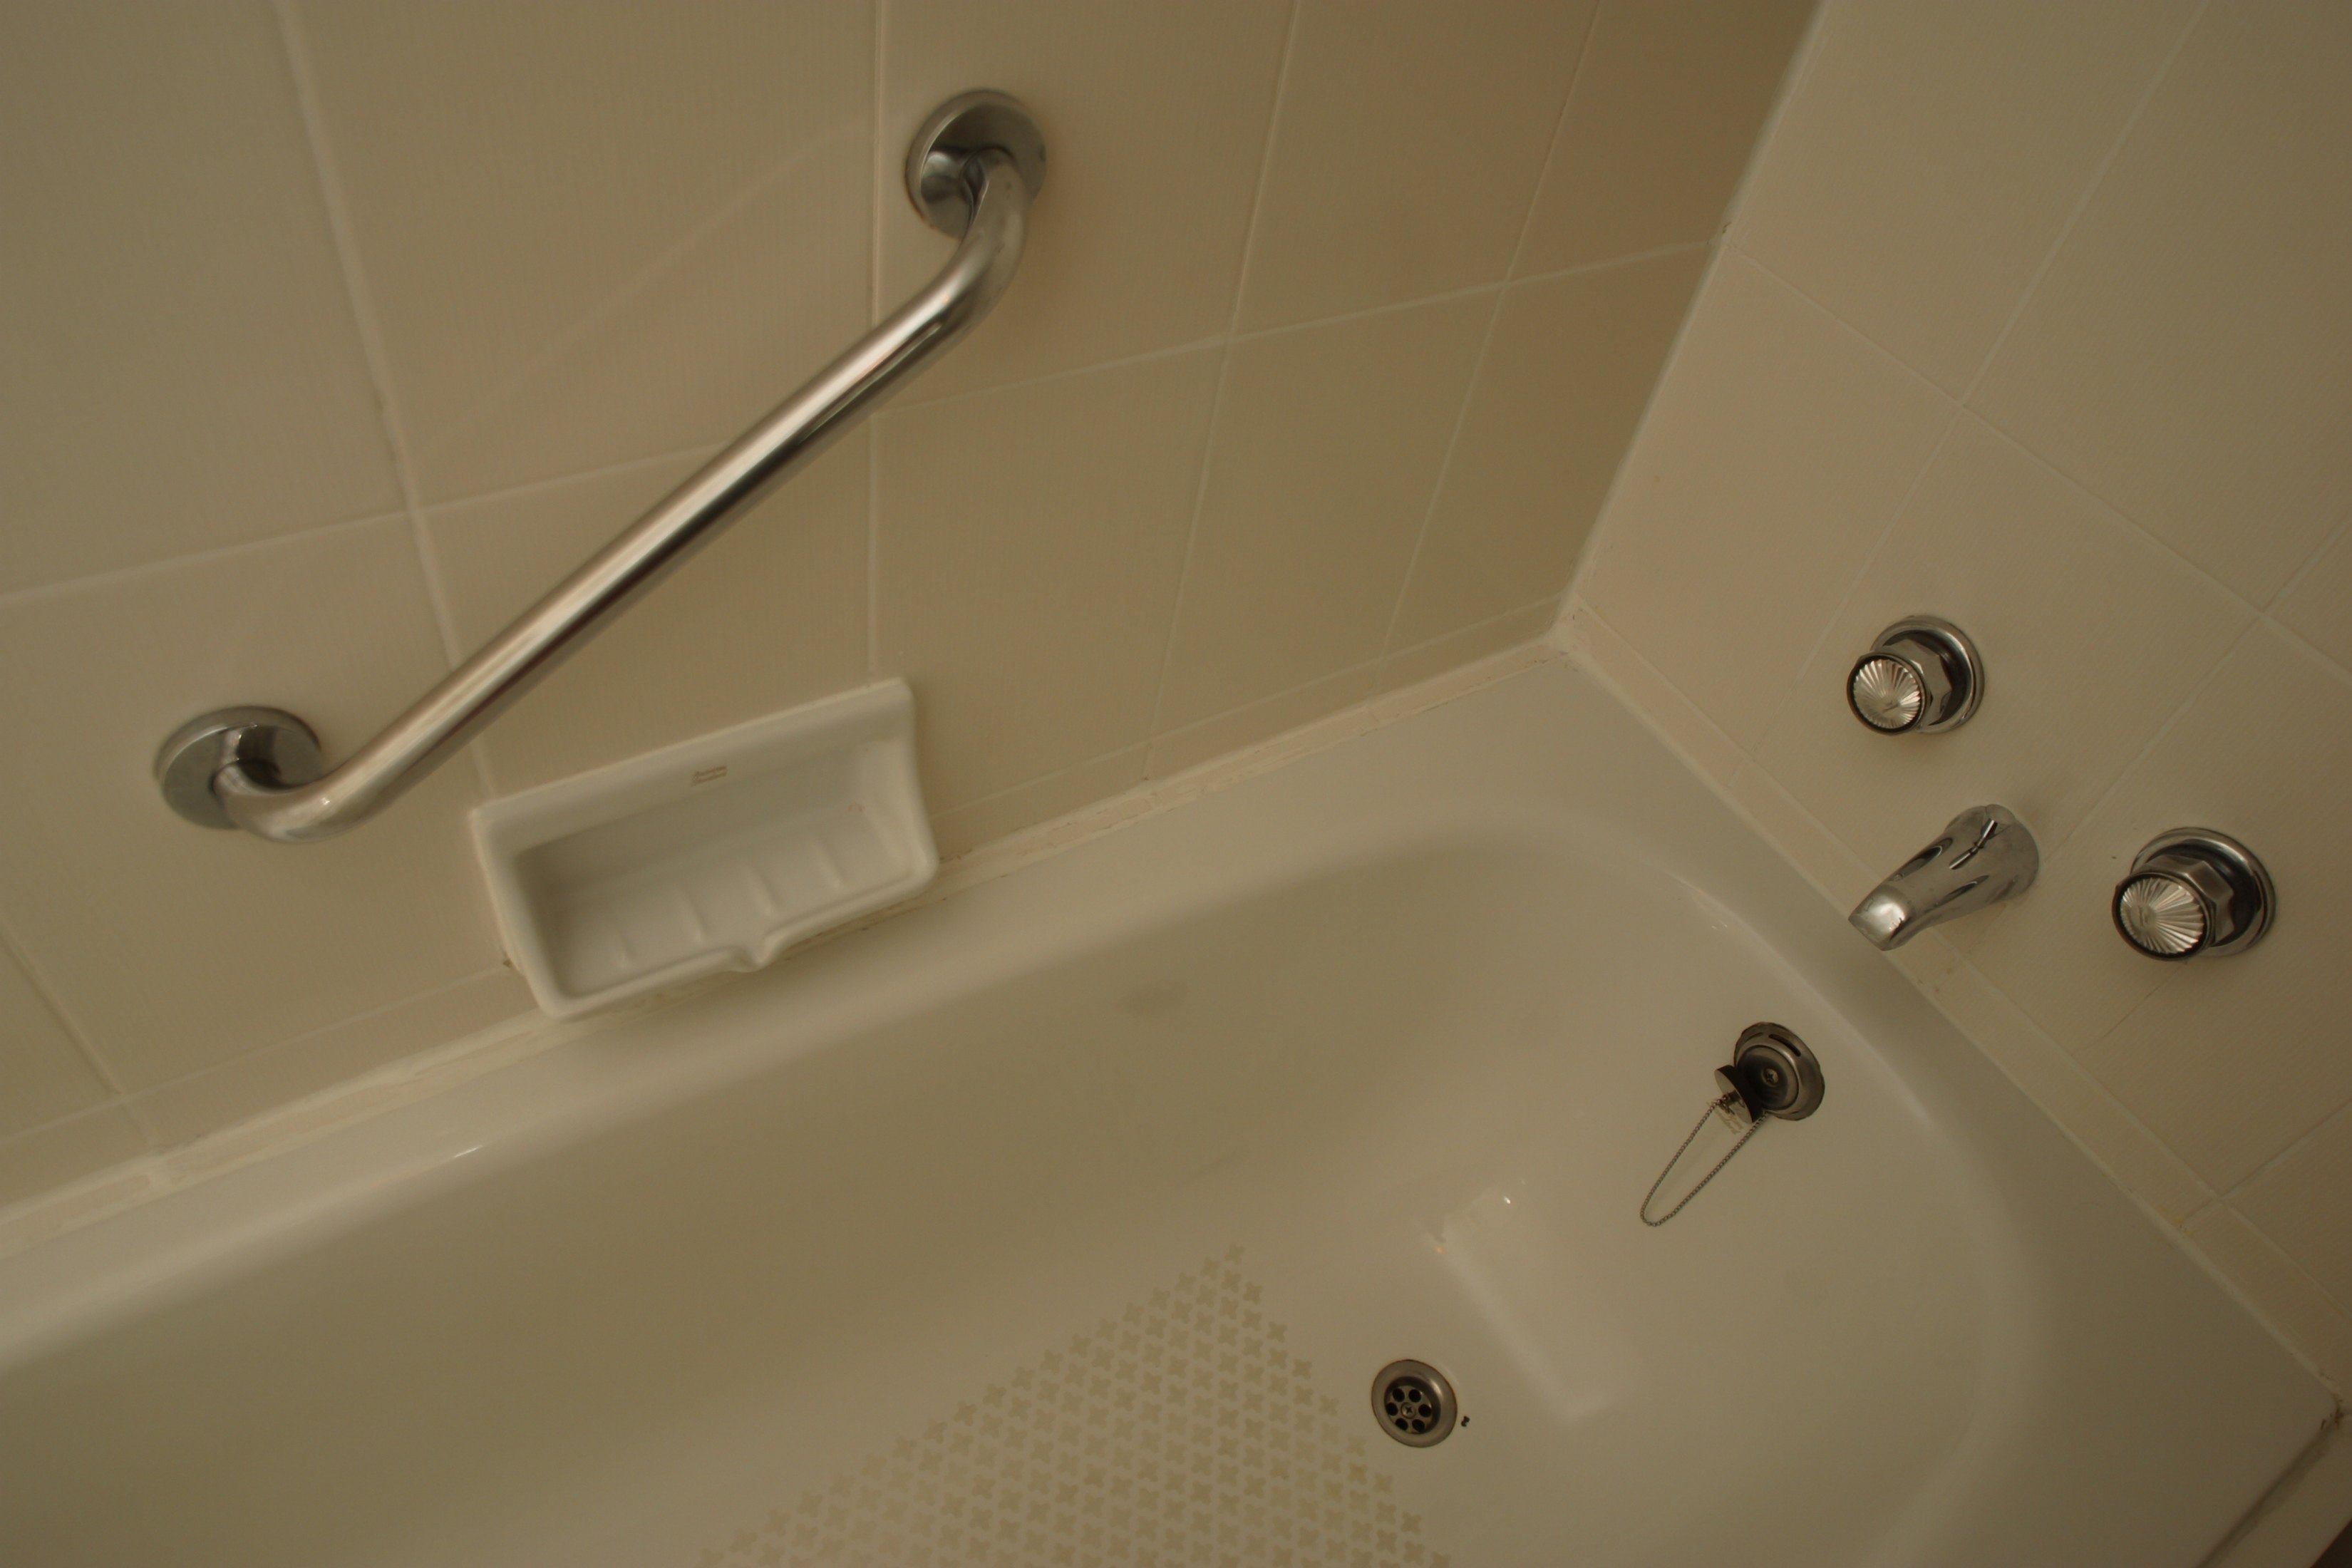 How to Strip Enamel Coating From a Bathtub | eHow